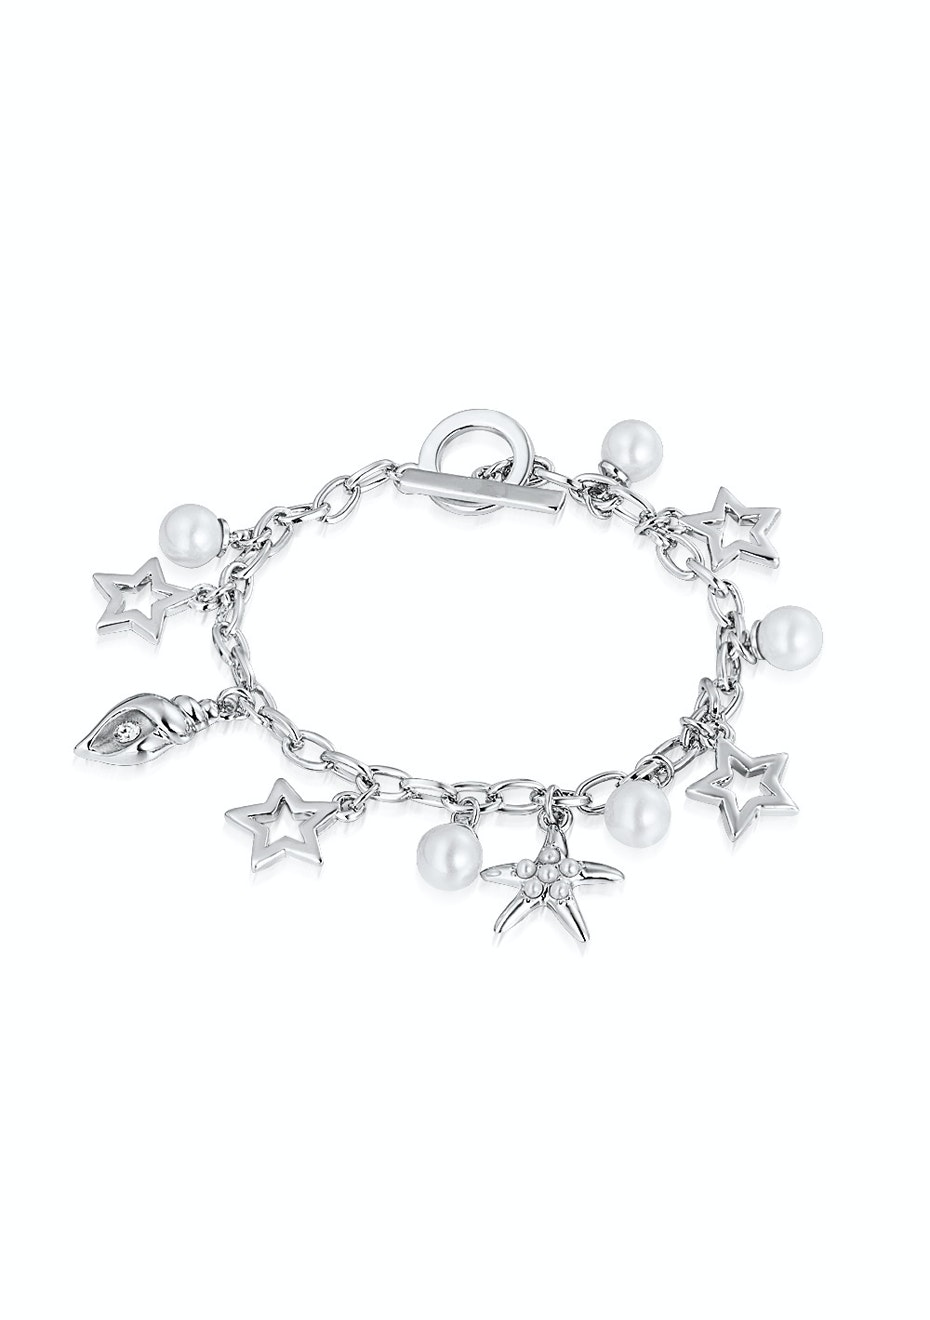 Deluxe Charm Bracelet Embellished with Crystals from Swarovski